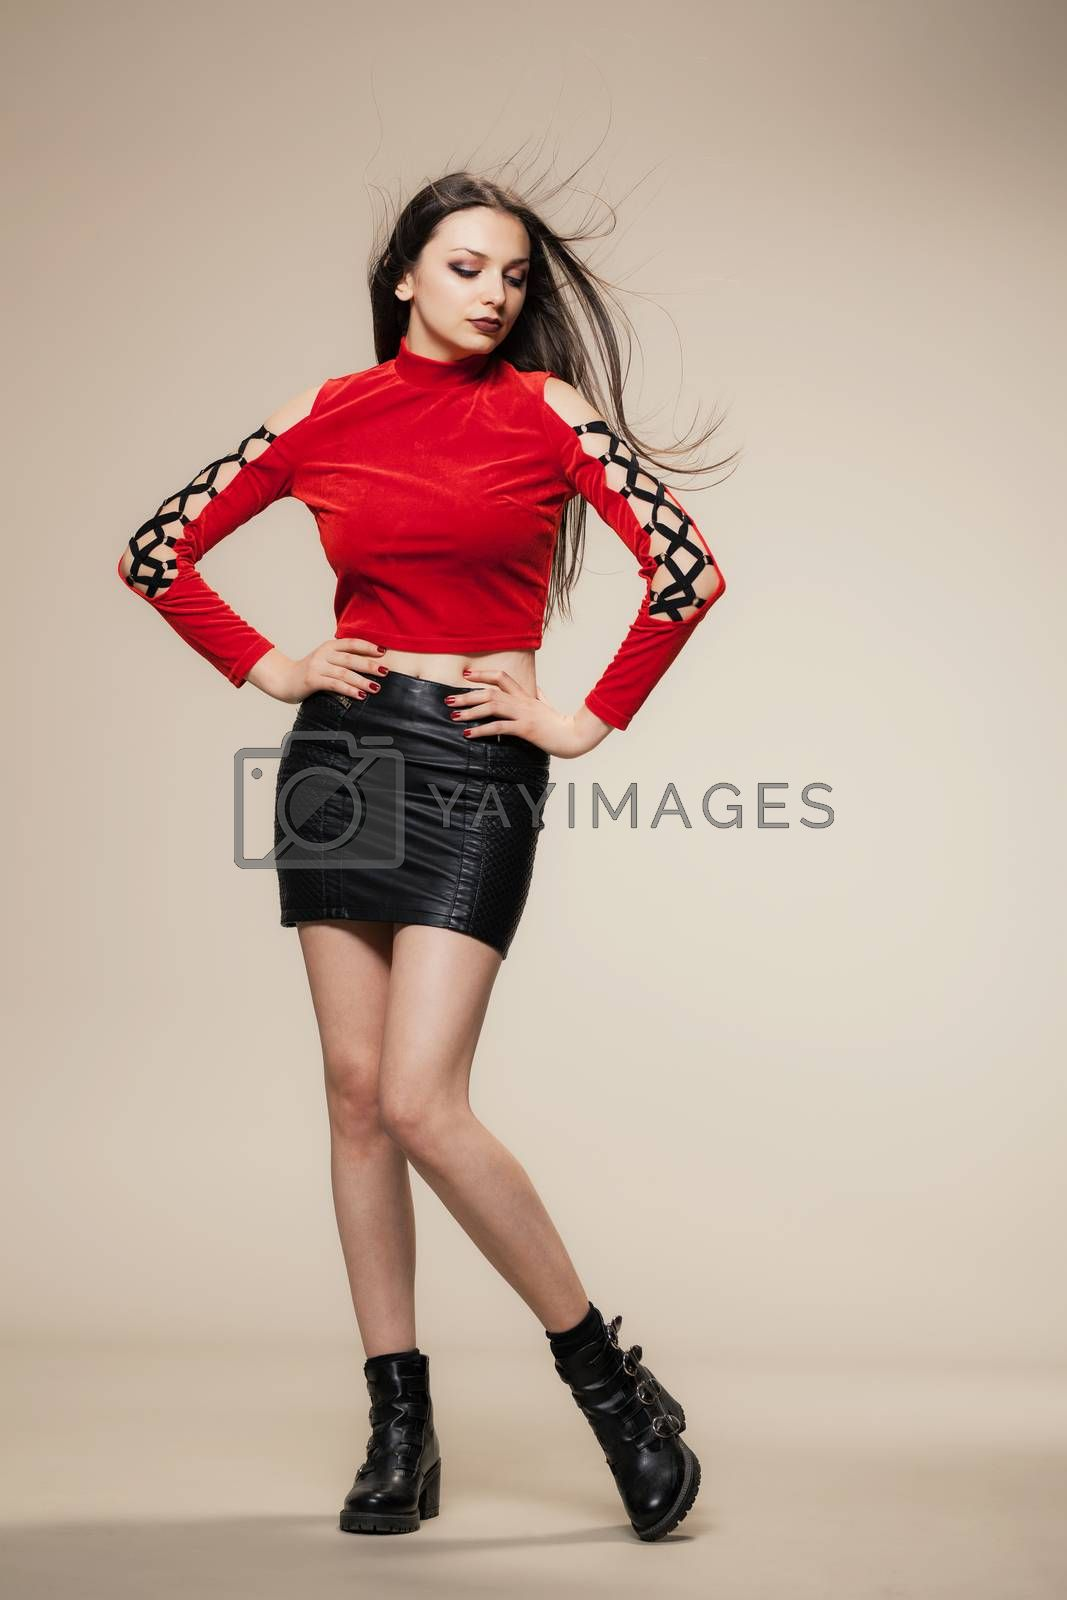 gothic style girl in red shirt, short black dress and boots